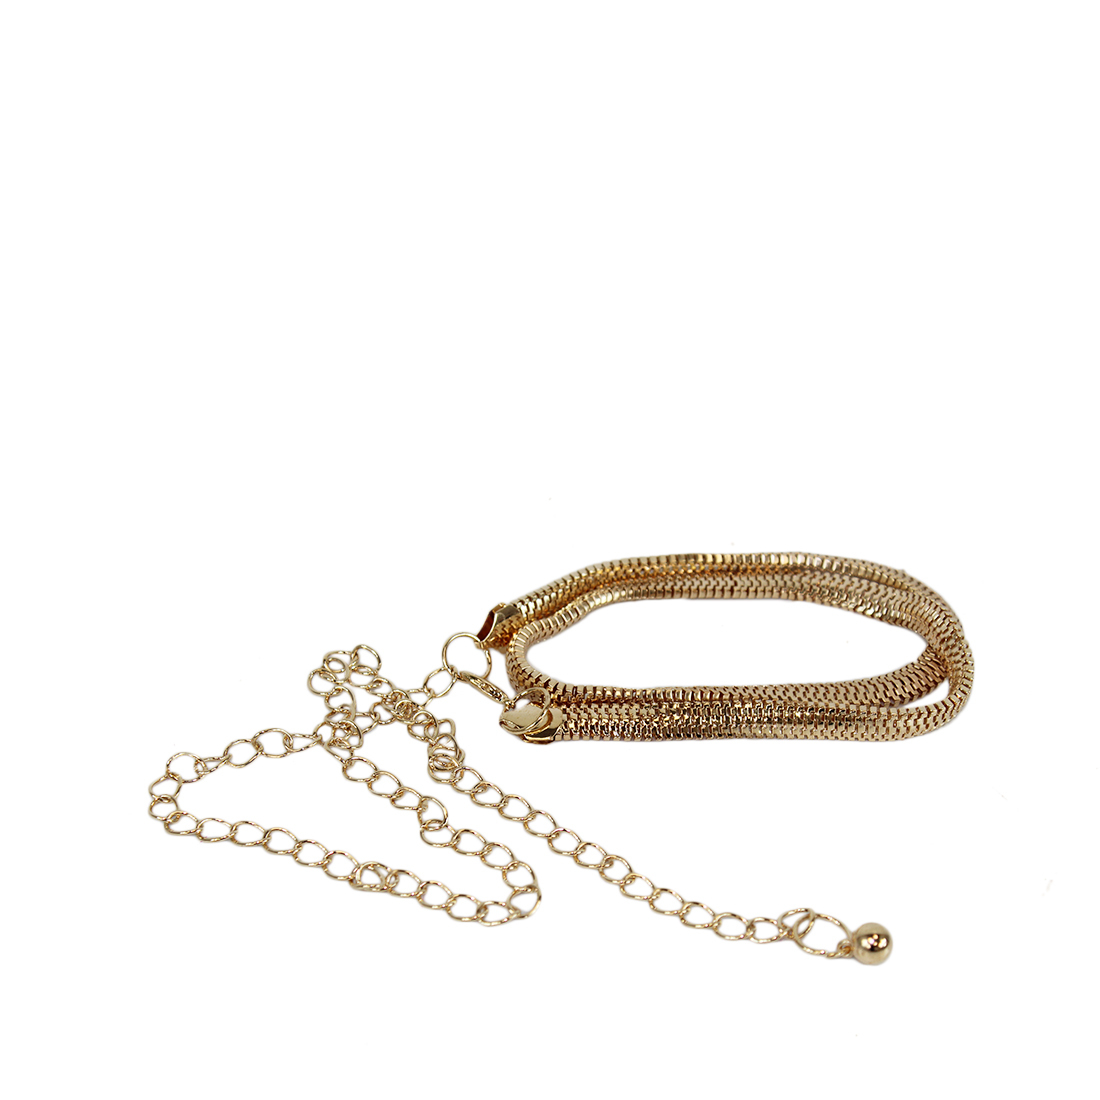 Chain Strap with adjustable Hook